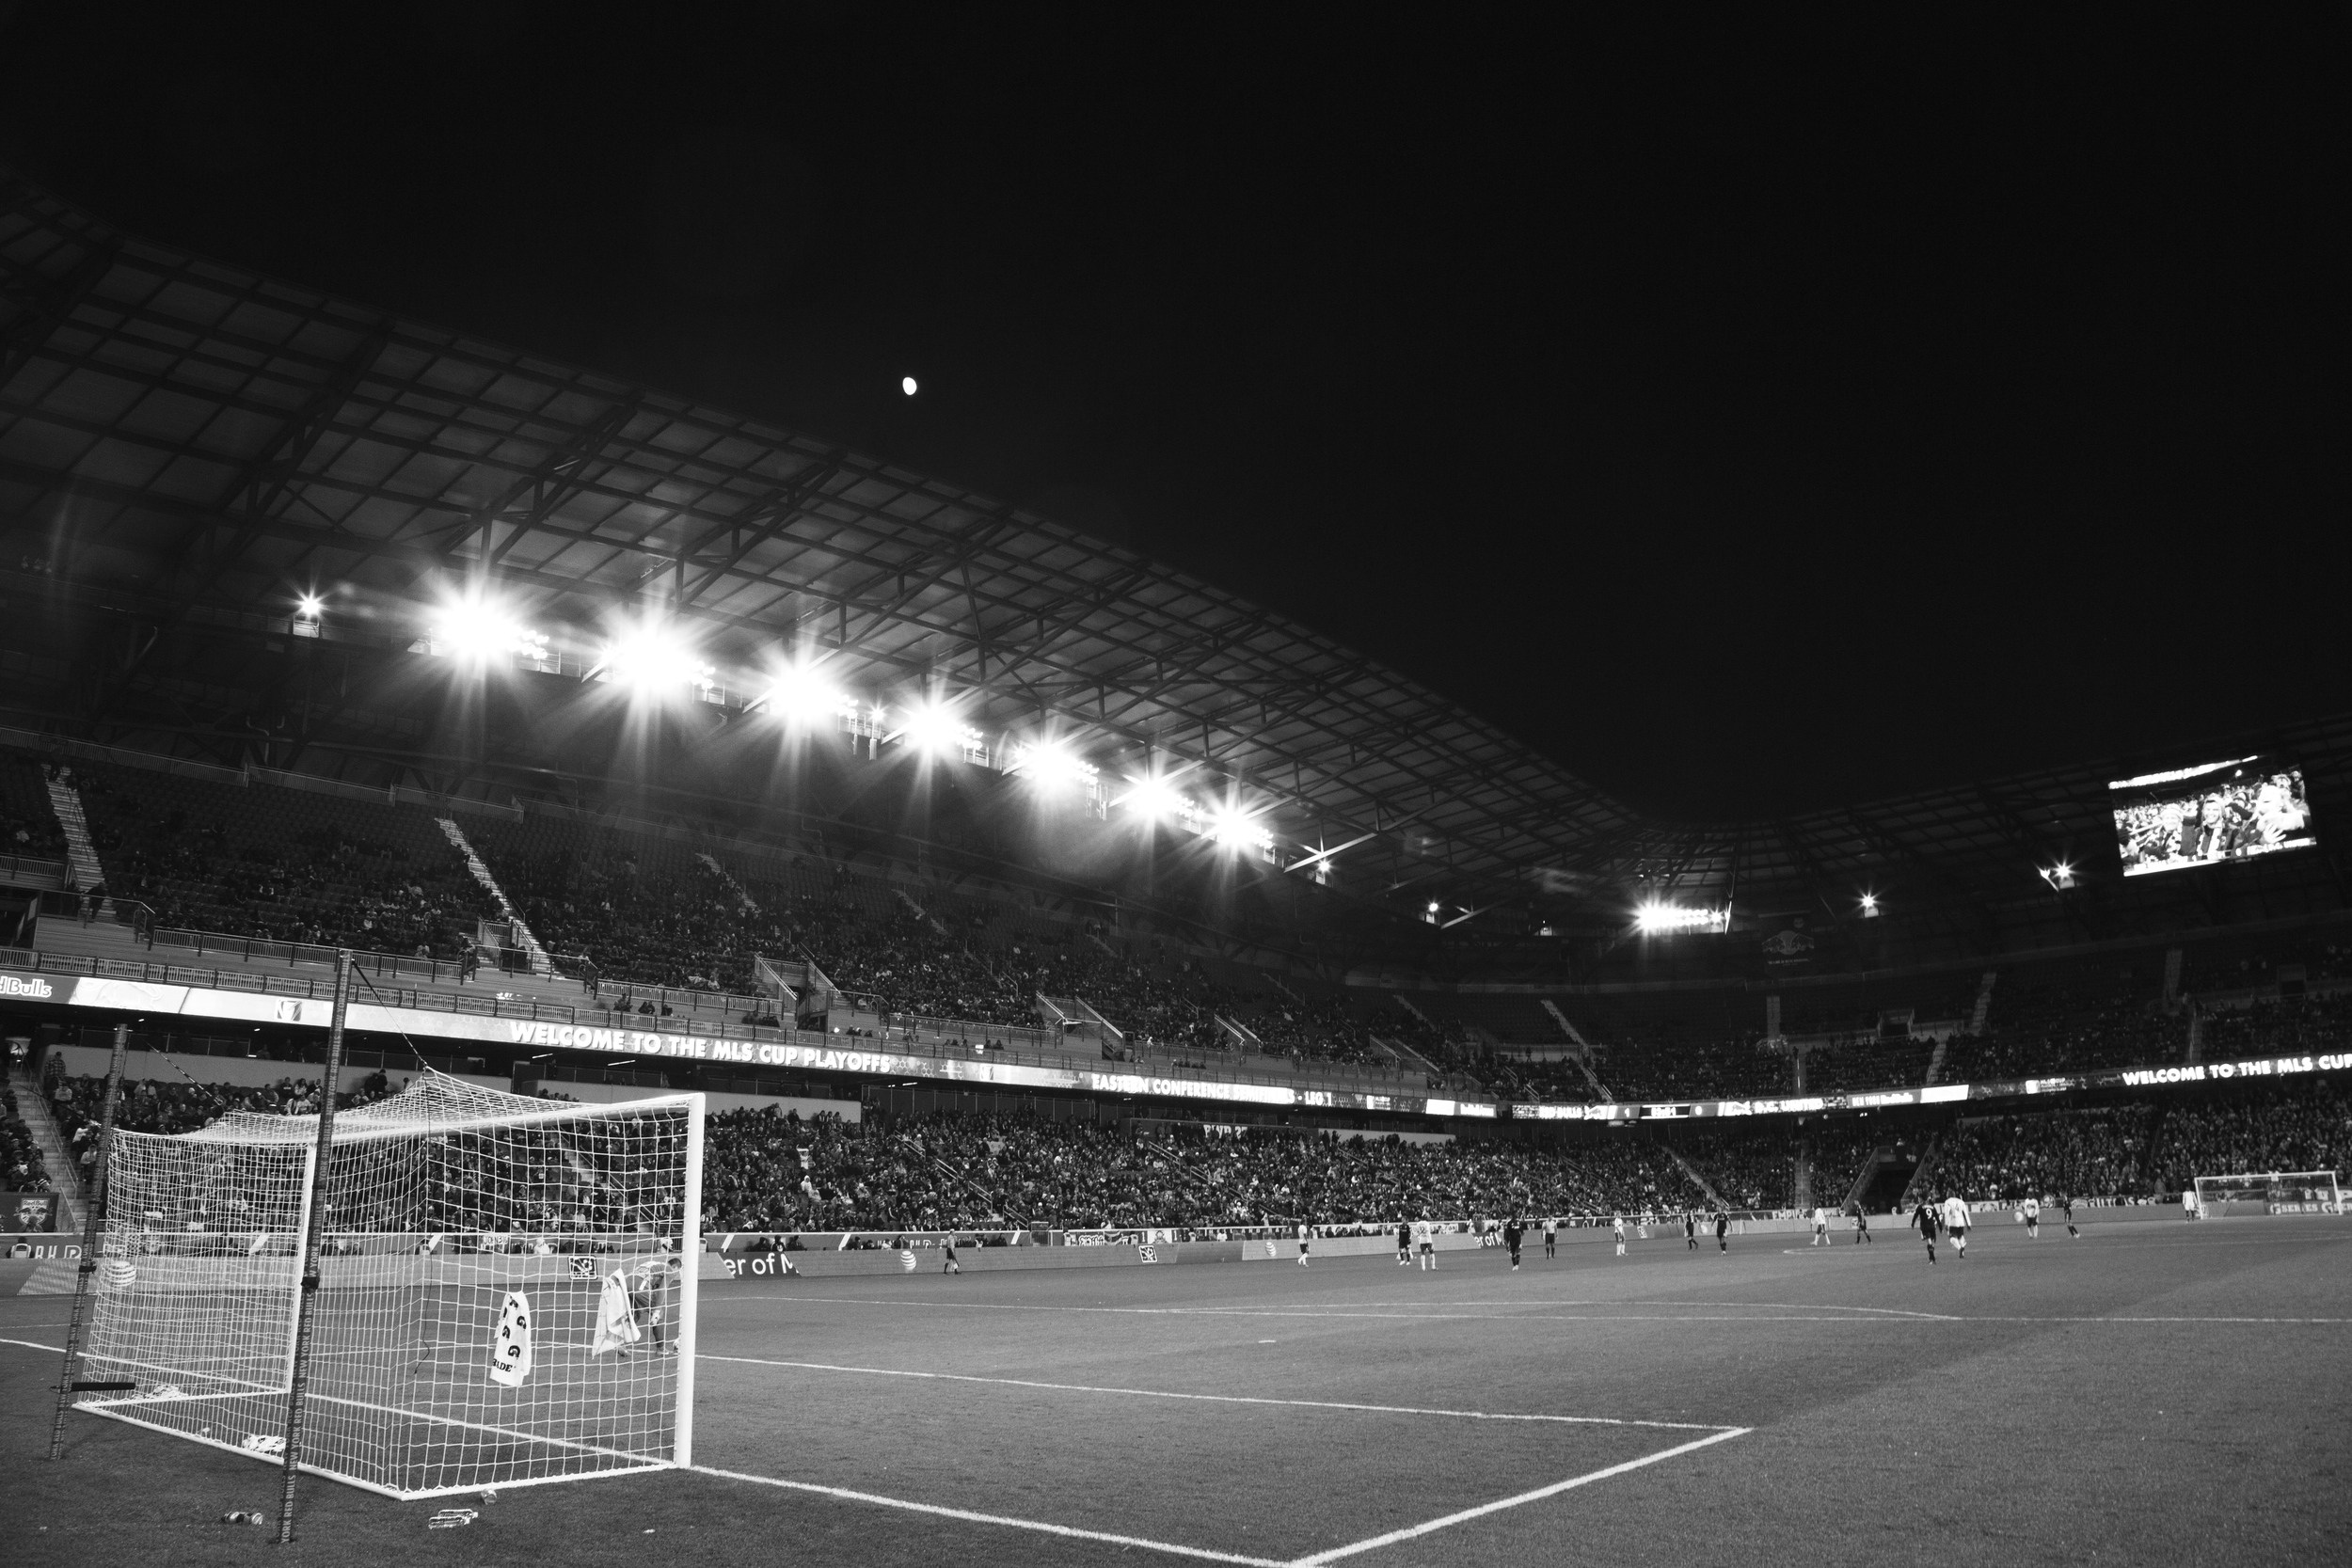 stadium with moon b&w.jpg